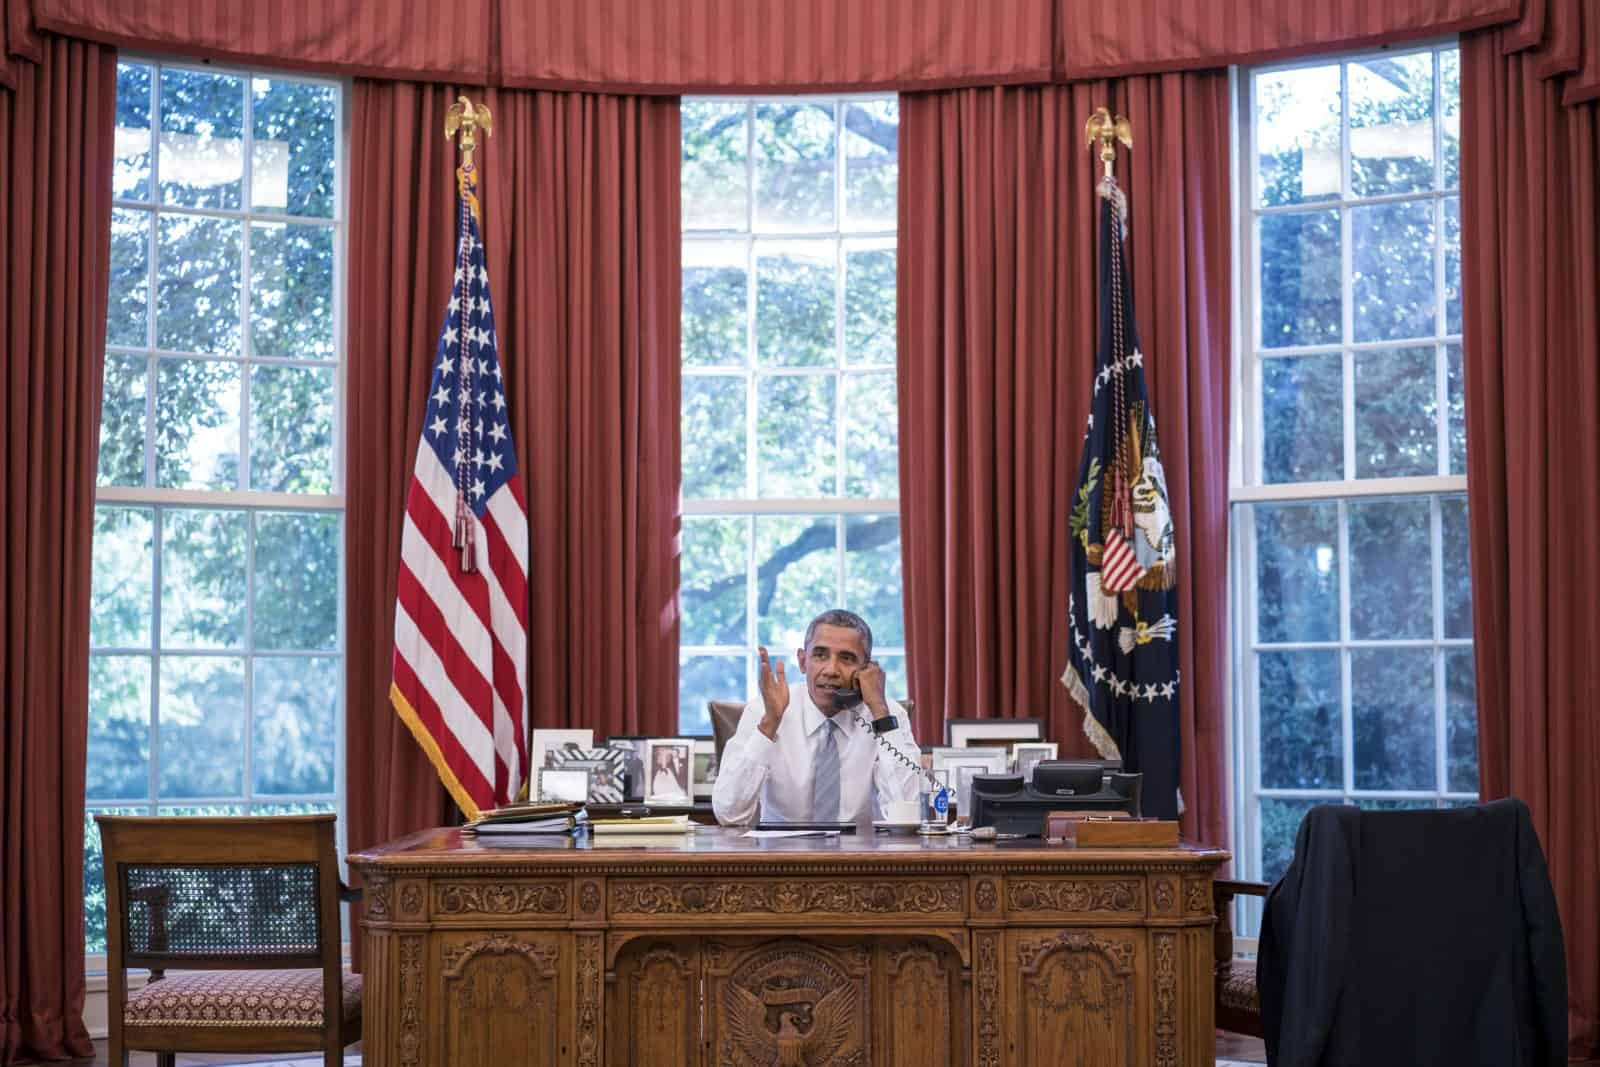 5 Things you never knew about the oval office